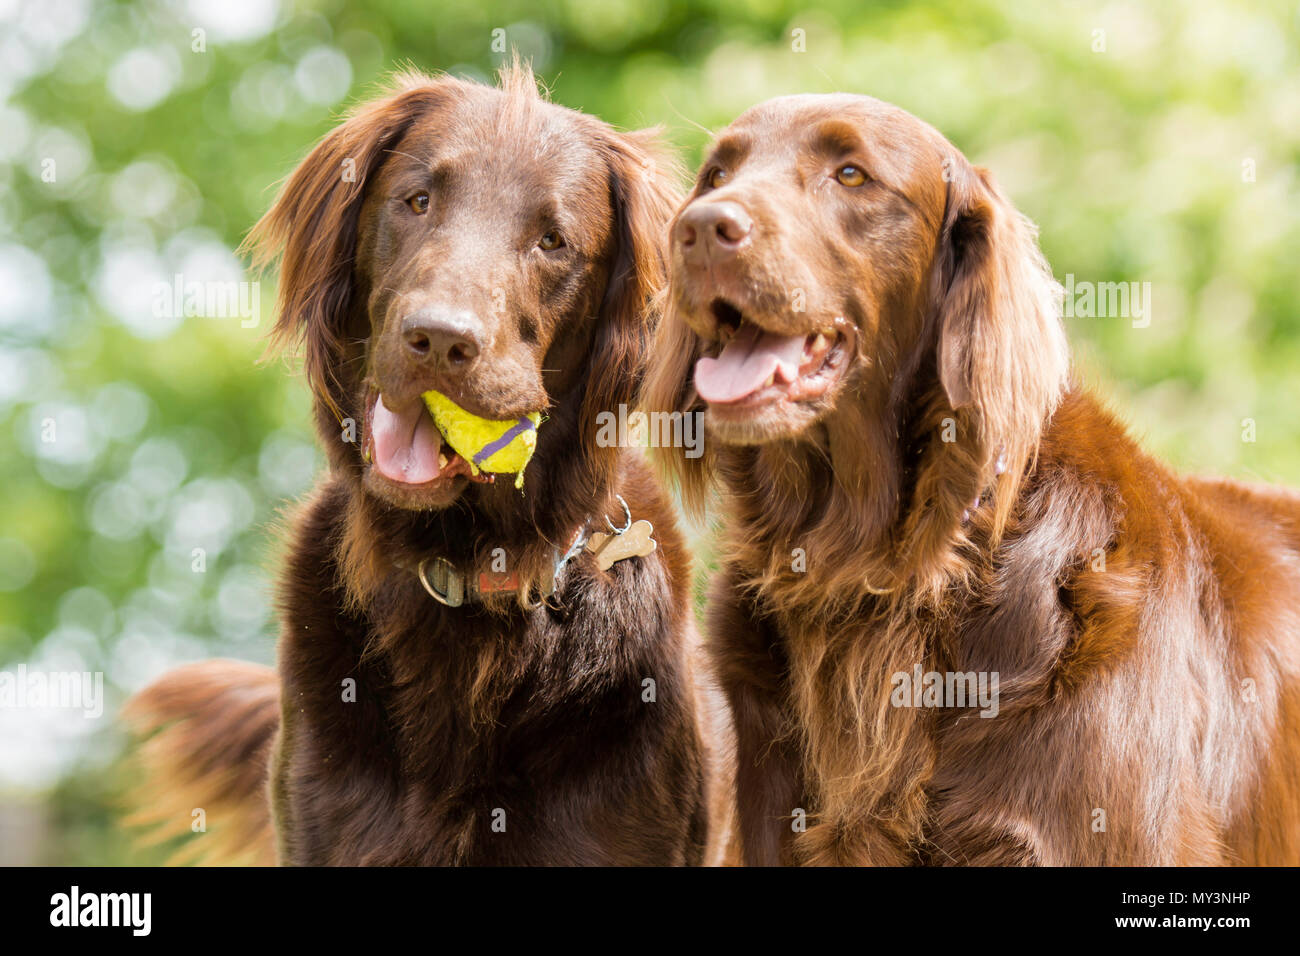 a pair of chocolate flat coat retriever dogs - Stock Image